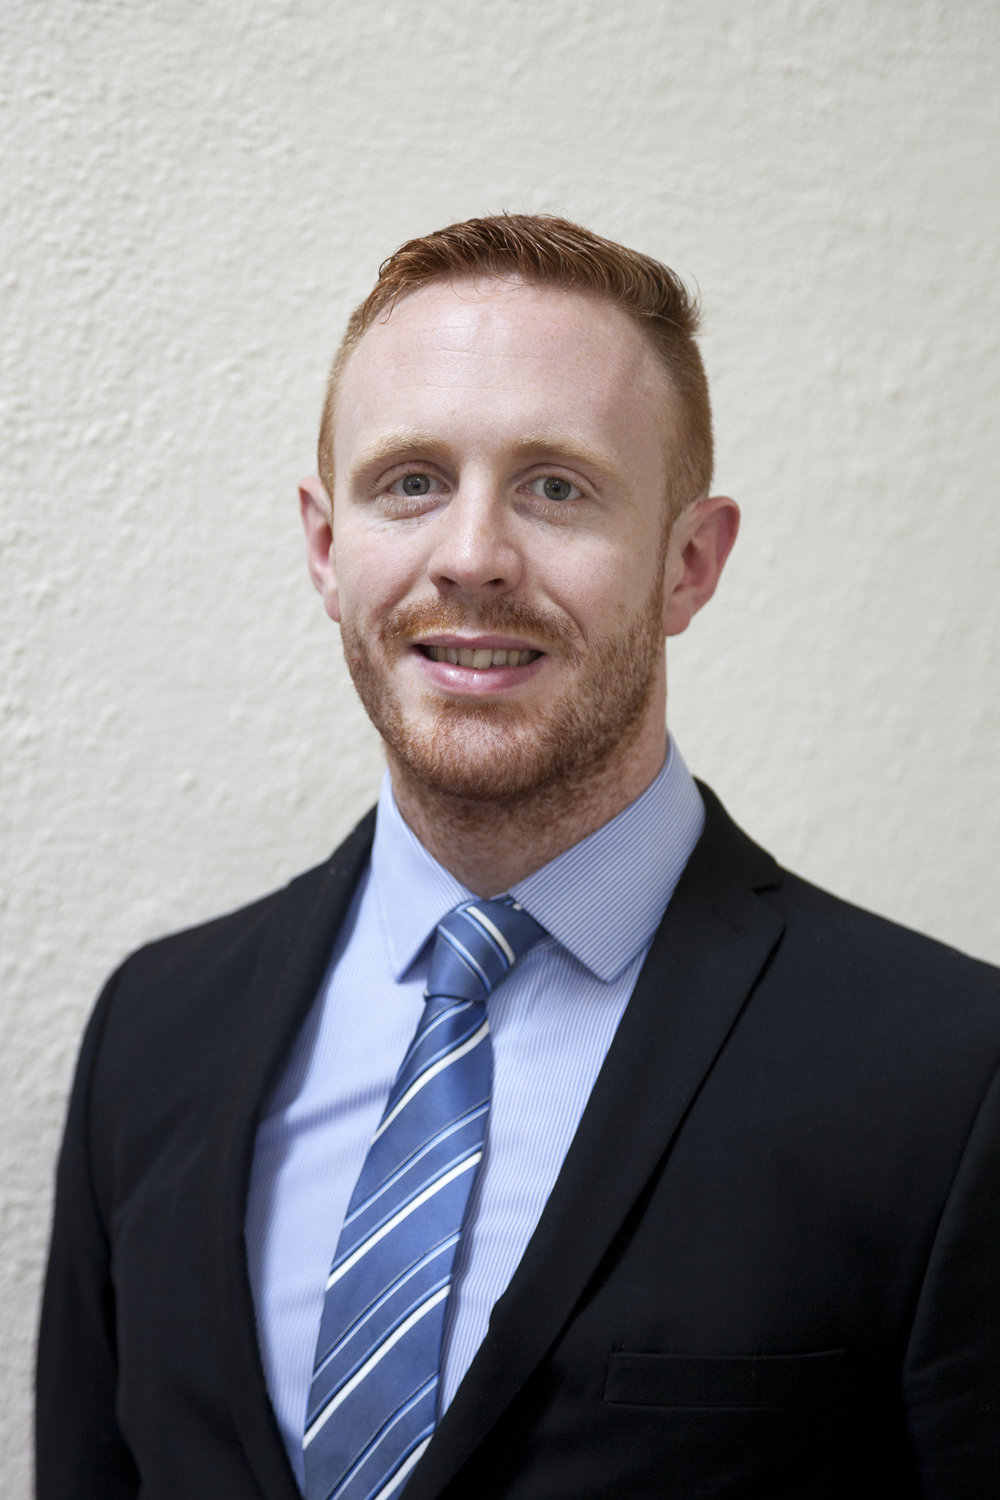 KEVIN AHERN - STRUCTURAL ENGINEER - (LONDON)